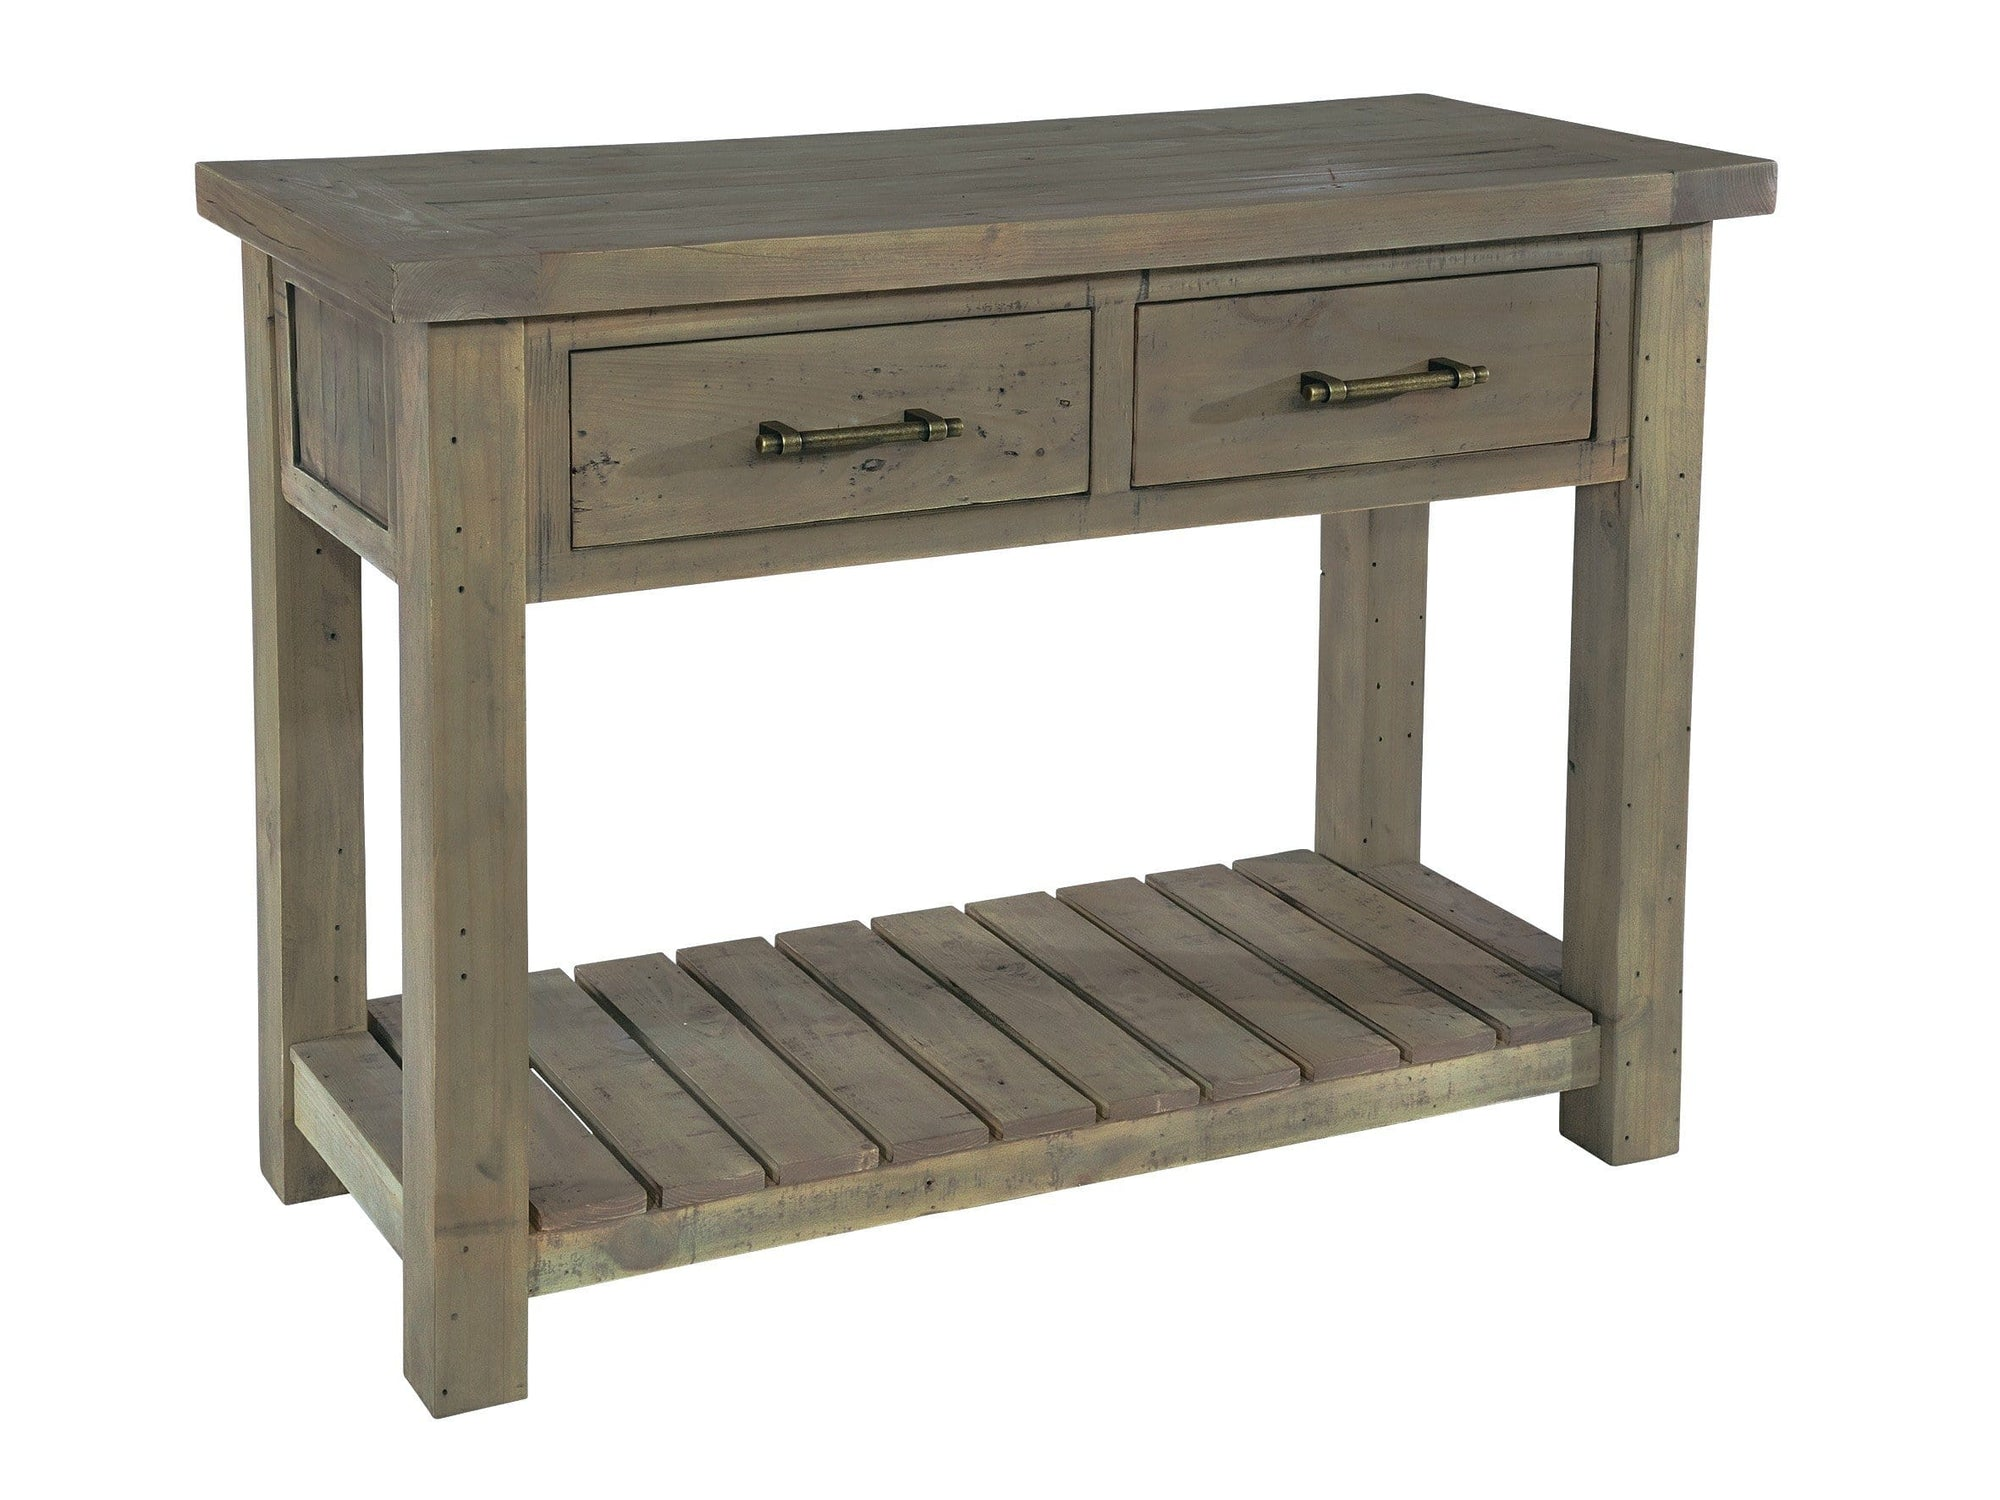 Reclaimed wood console table, for hallways or corridors. Two drawers at the top plus a bottom shelf.